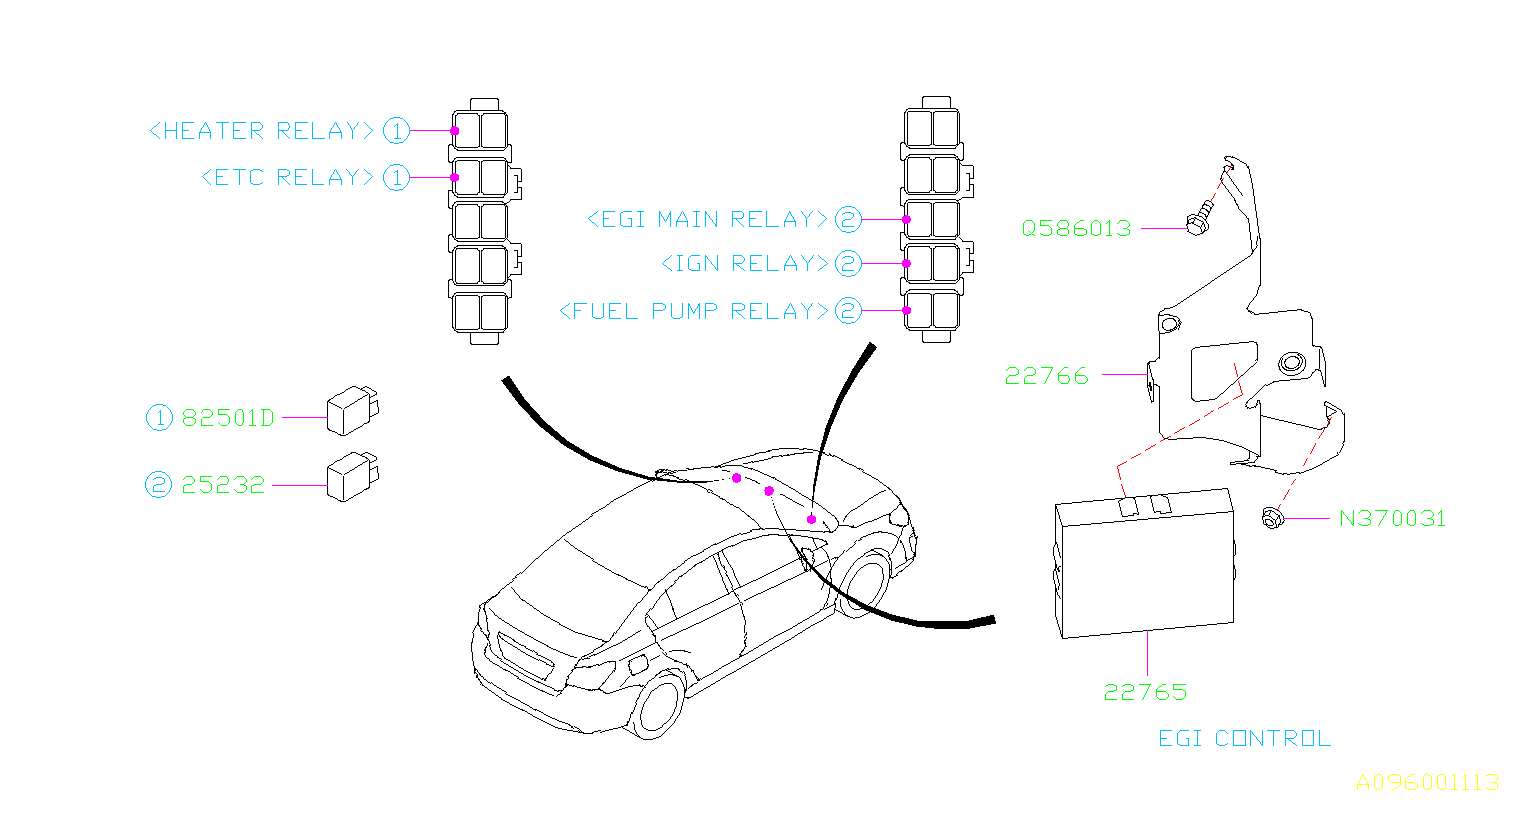 Subaru Impreza Relay Sensor Engine Electrical